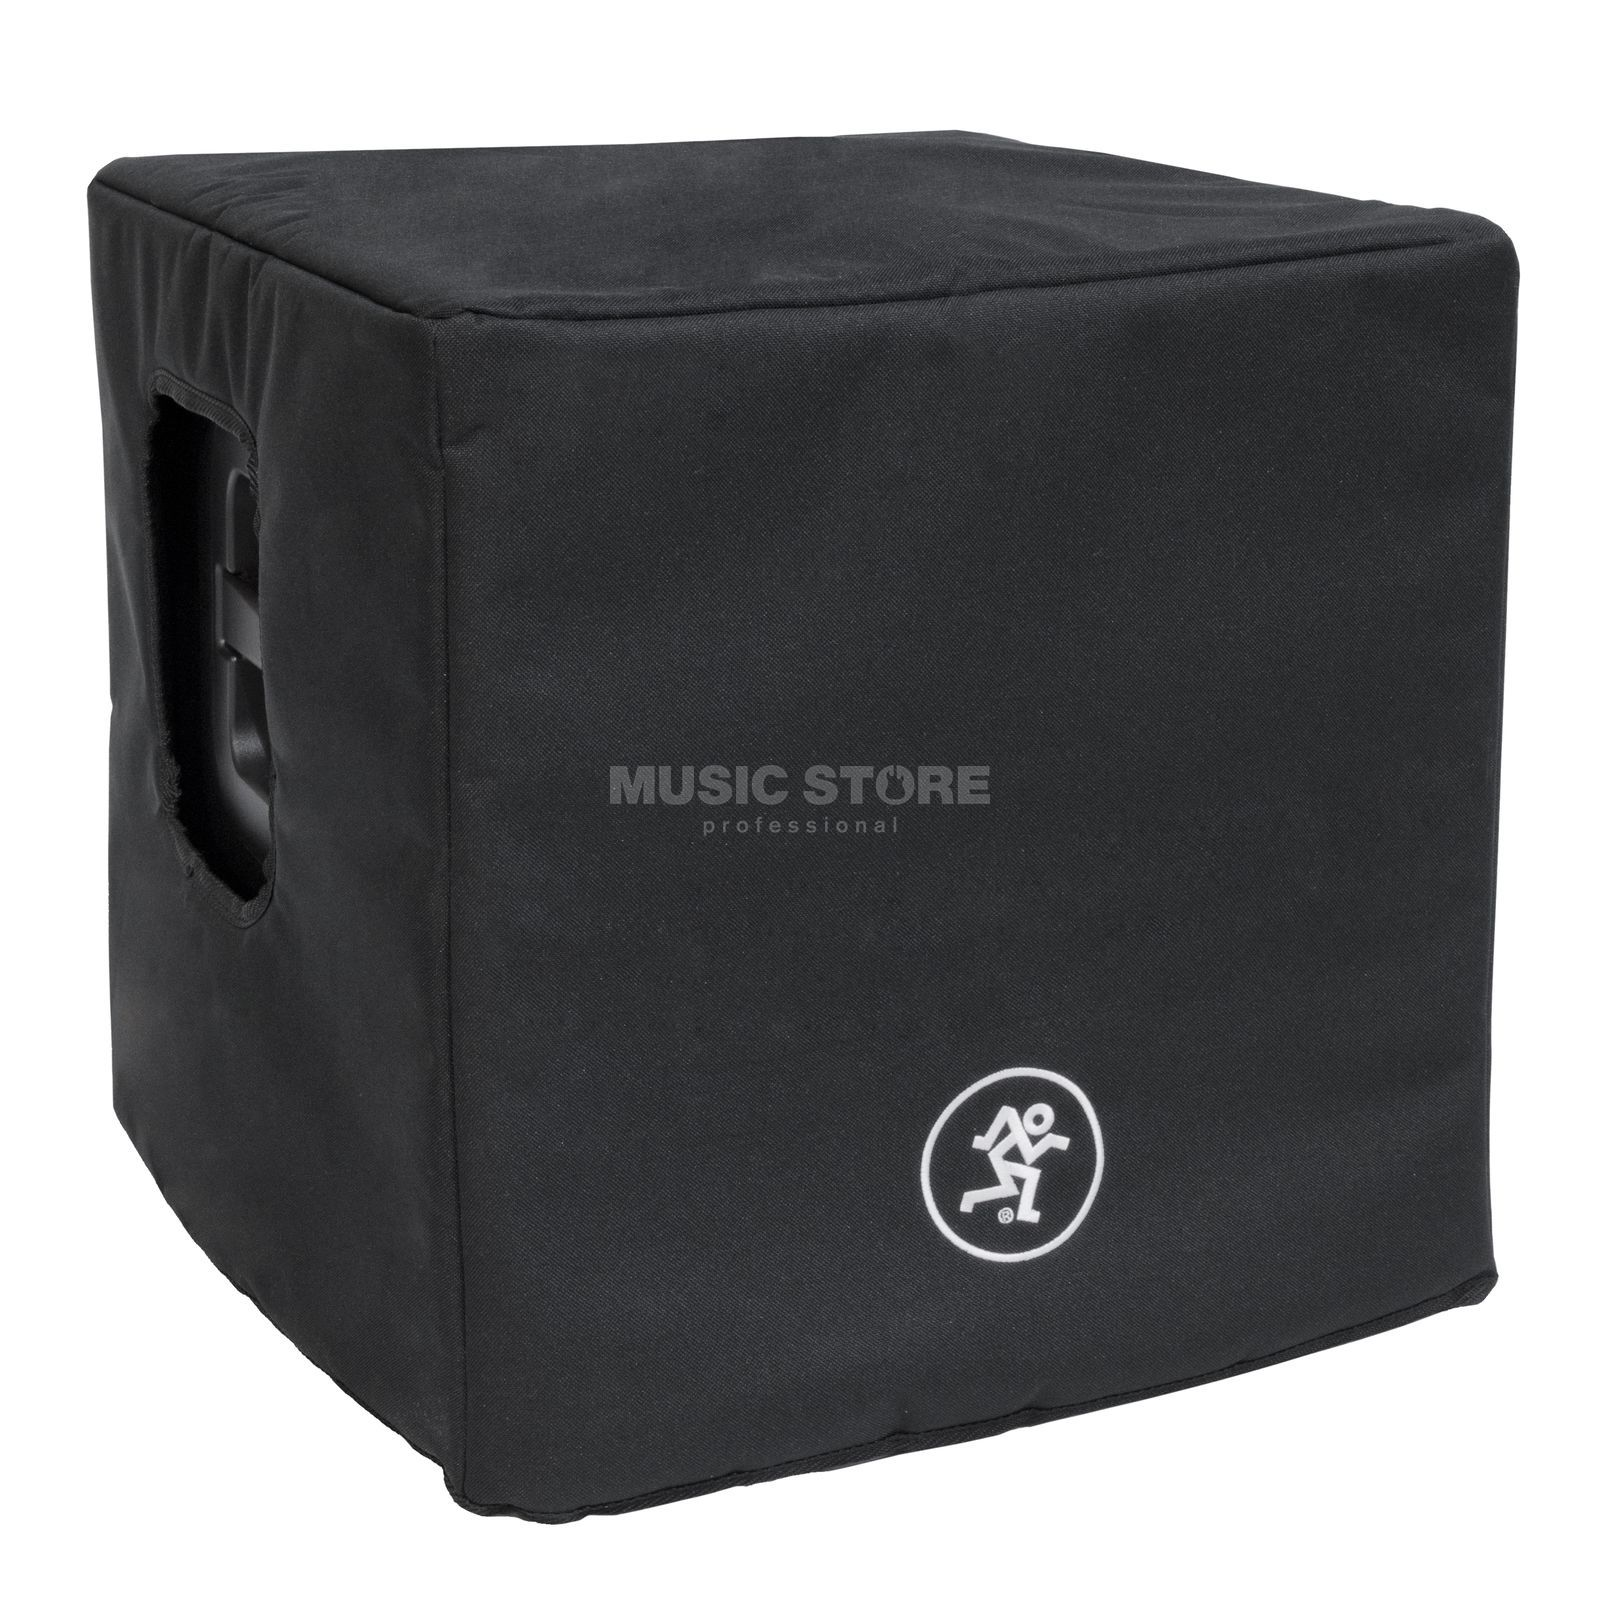 Mackie DLM12S Speaker Cover Protective Cover for DLM12S Product Image